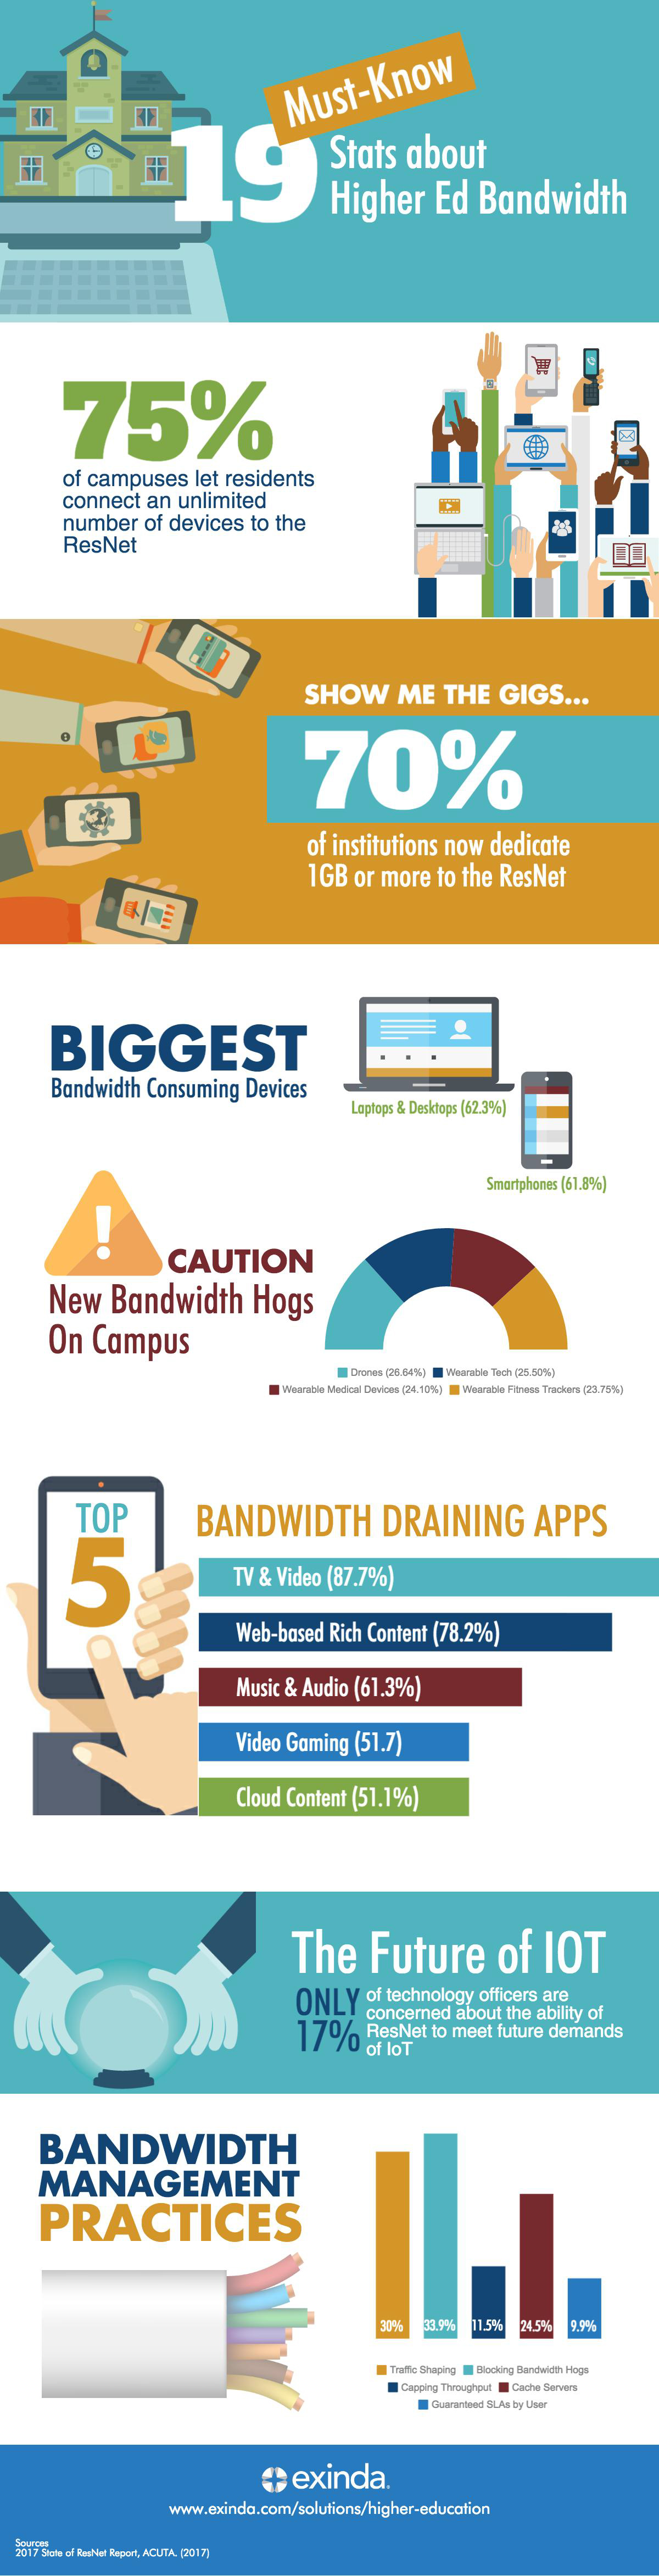 19-Must-Know-Facts-About-Higher-Ed-Bandwidth